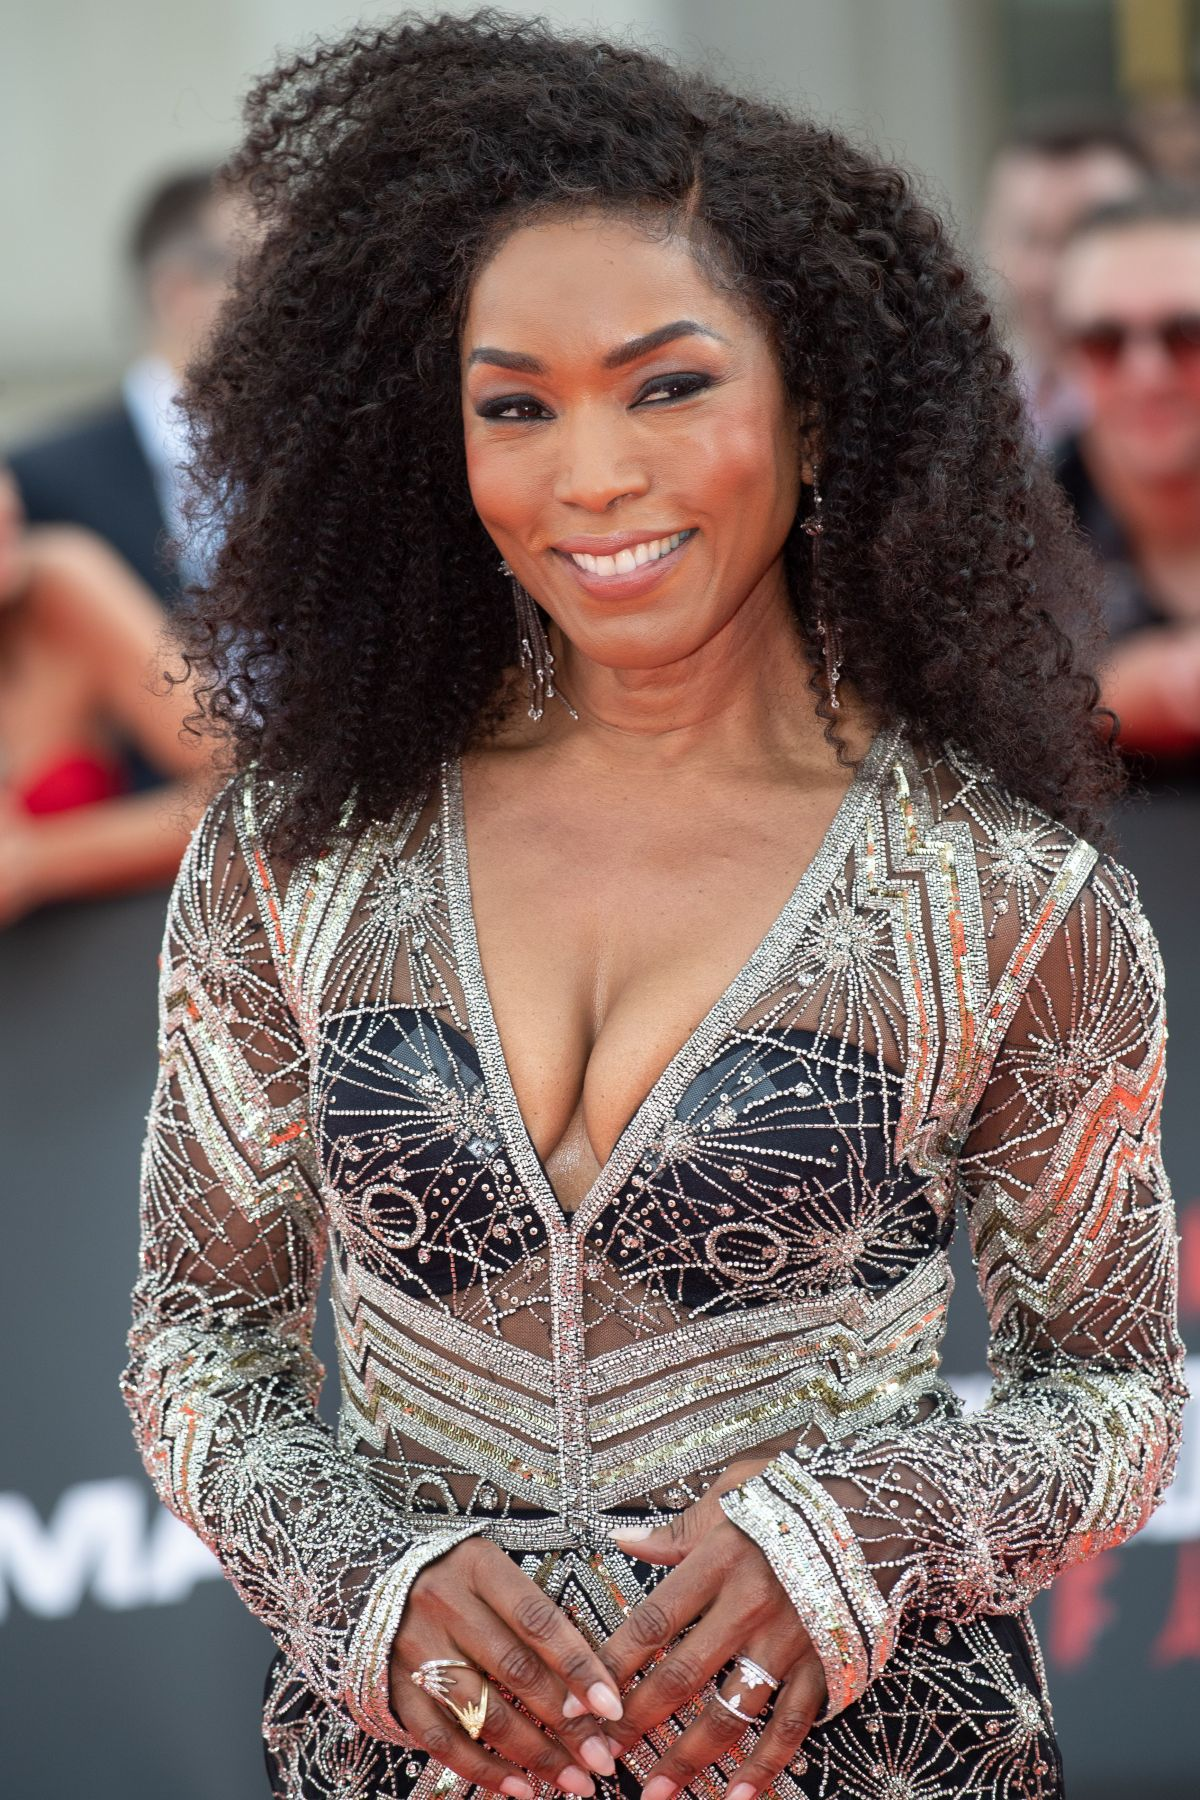 Angela Bassett At Mission Impossible Fallout Film